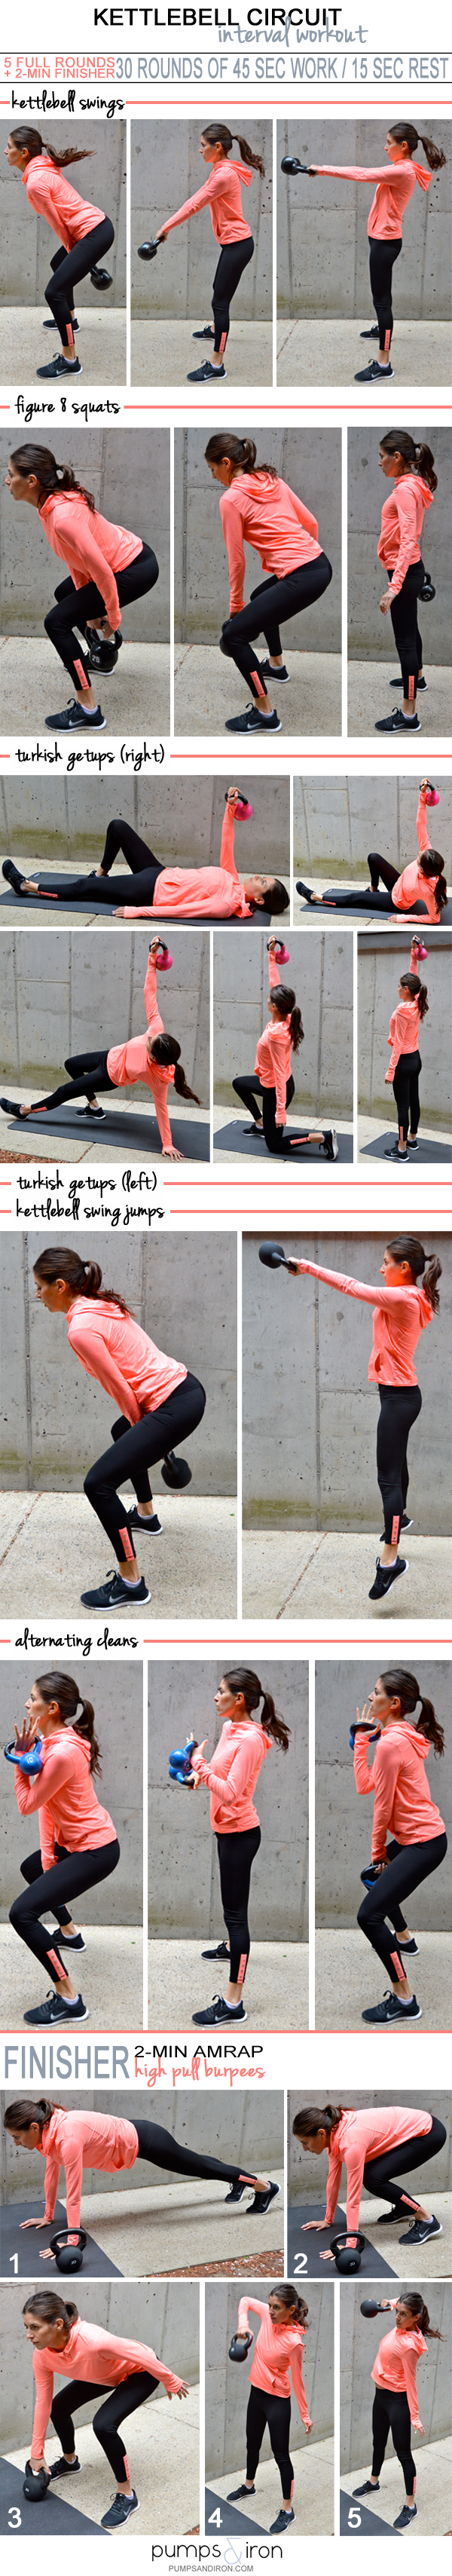 30 Minute Kettlebell HIIT Workout With Finisher